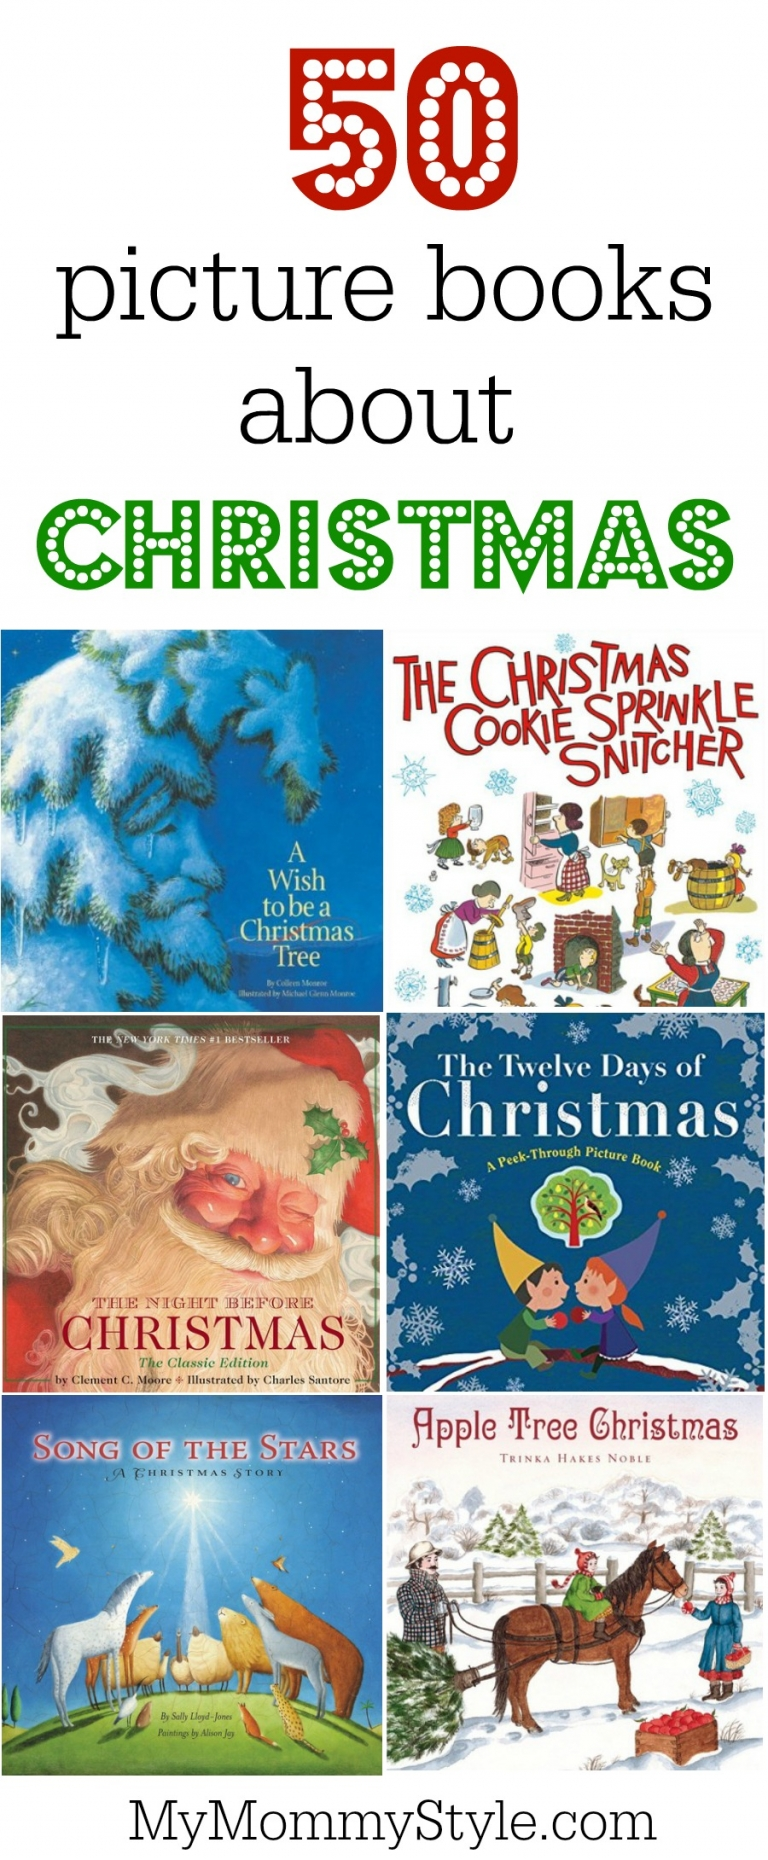 50-picture-books-about-christmas